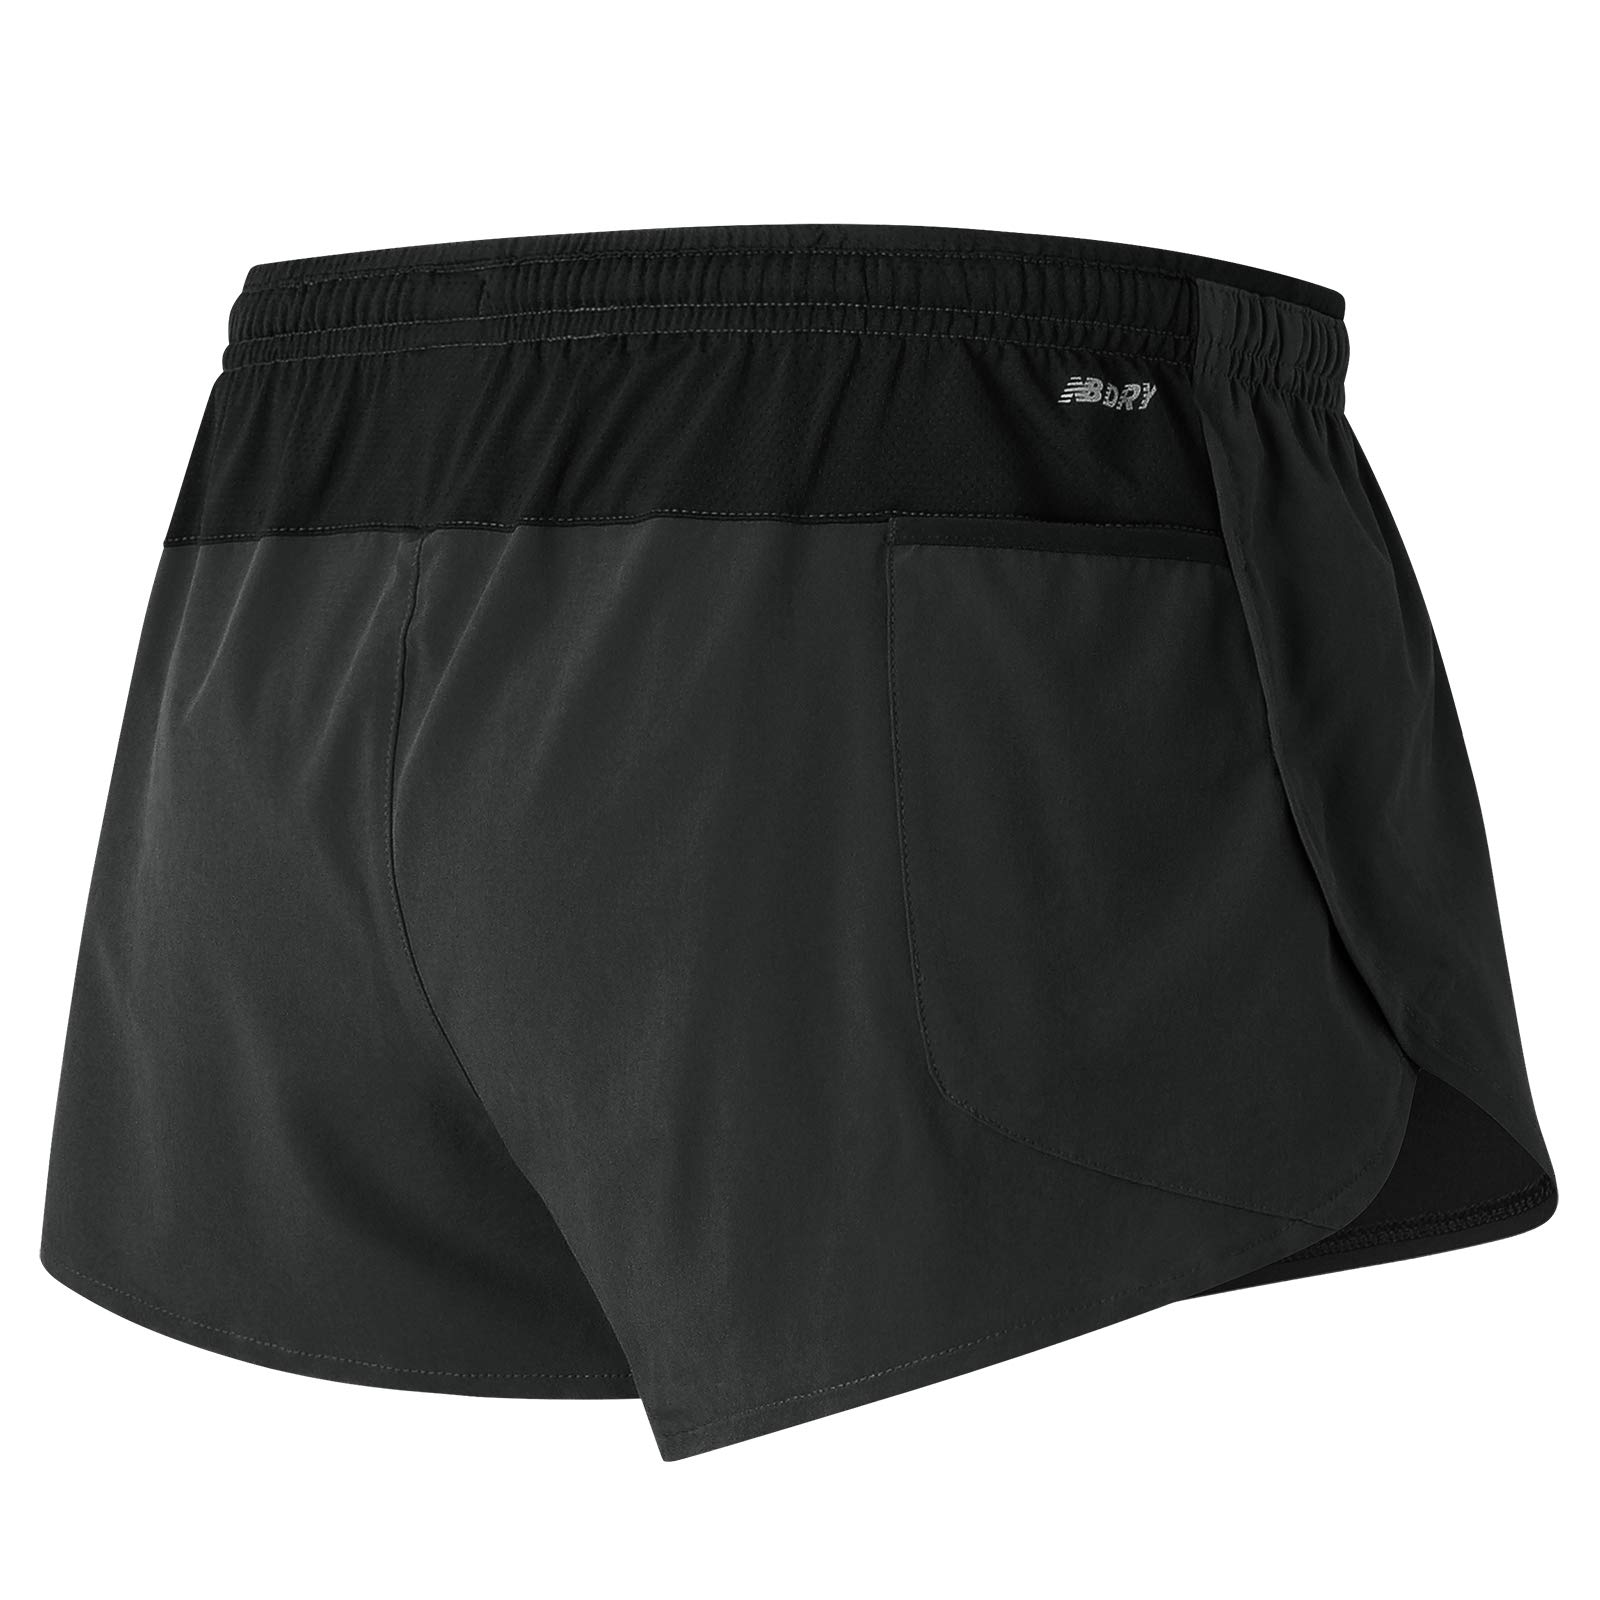 New Balance Impact Split Short 3in, Black, Small by New Balance (Image #3)